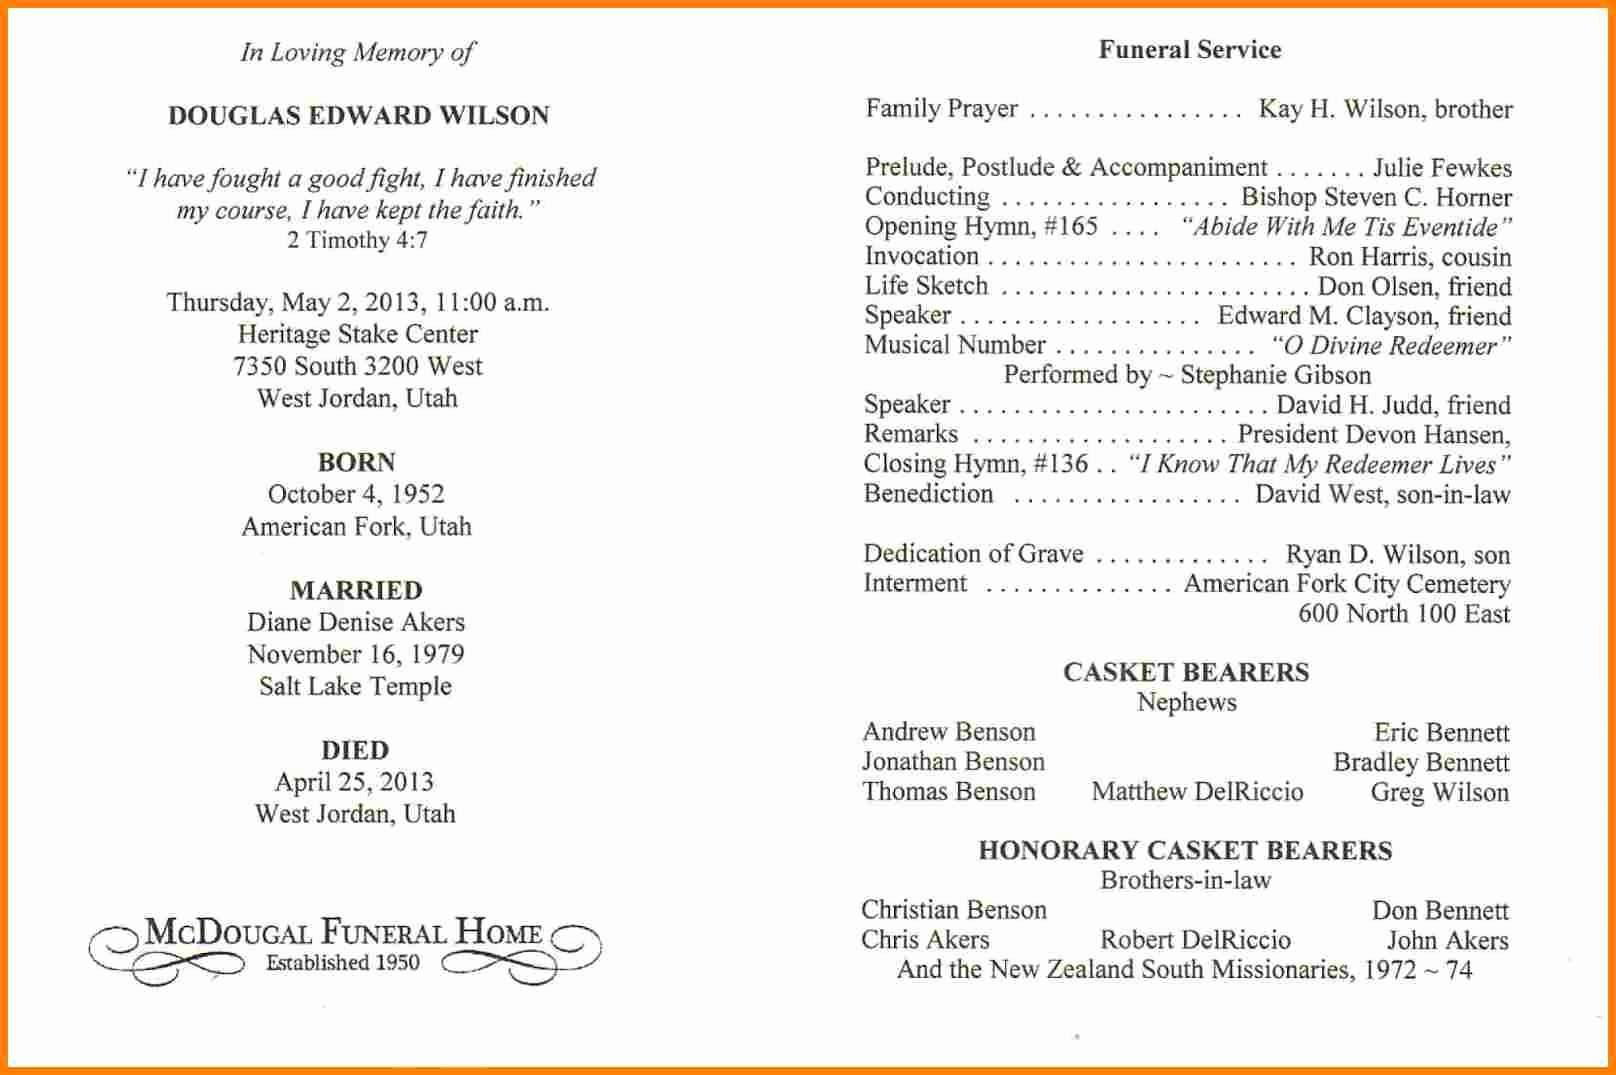 Funeral Service Outline Template Fresh Funeral Service Outline Funeral Memorial Service Sermons